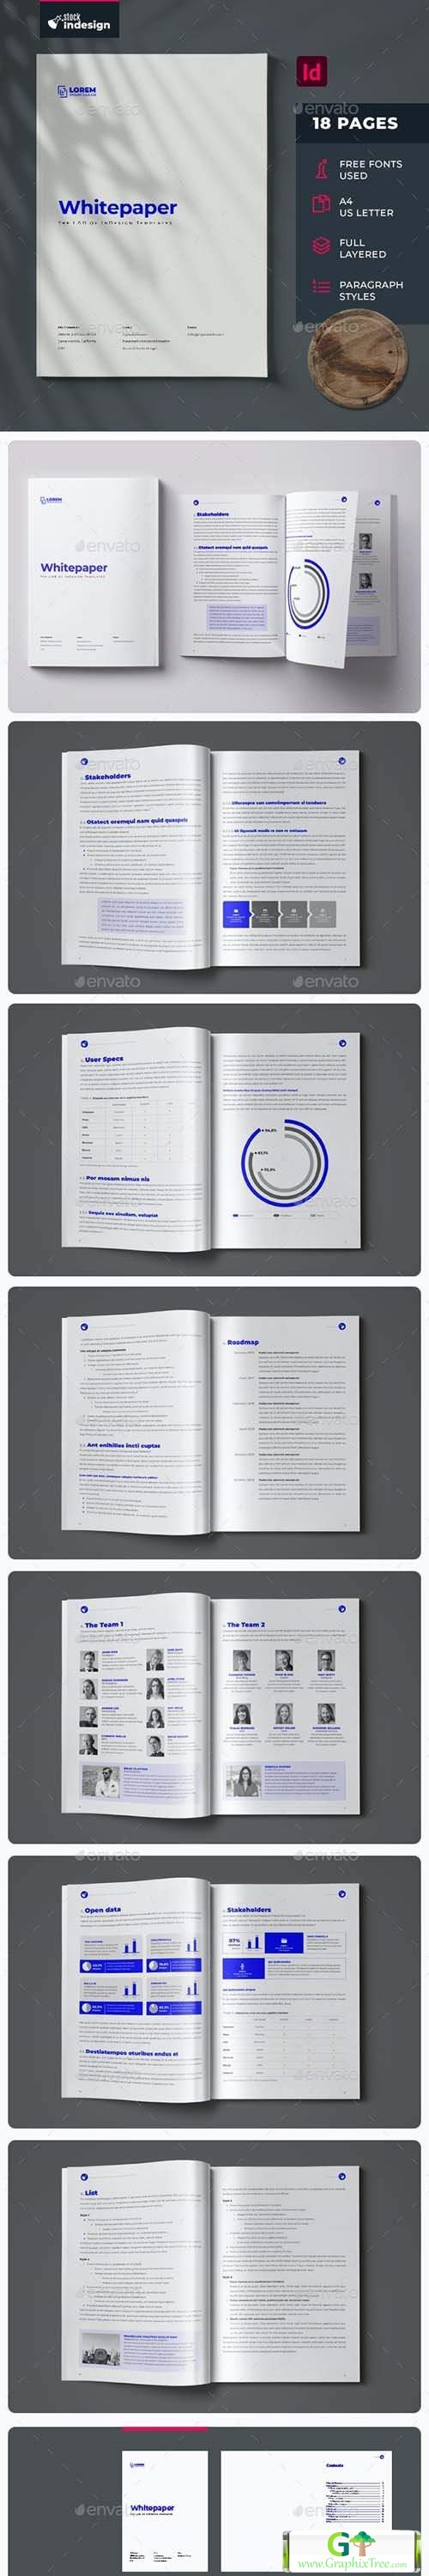 White Paper [Powerpoint] [Indesign & Powerpoints]